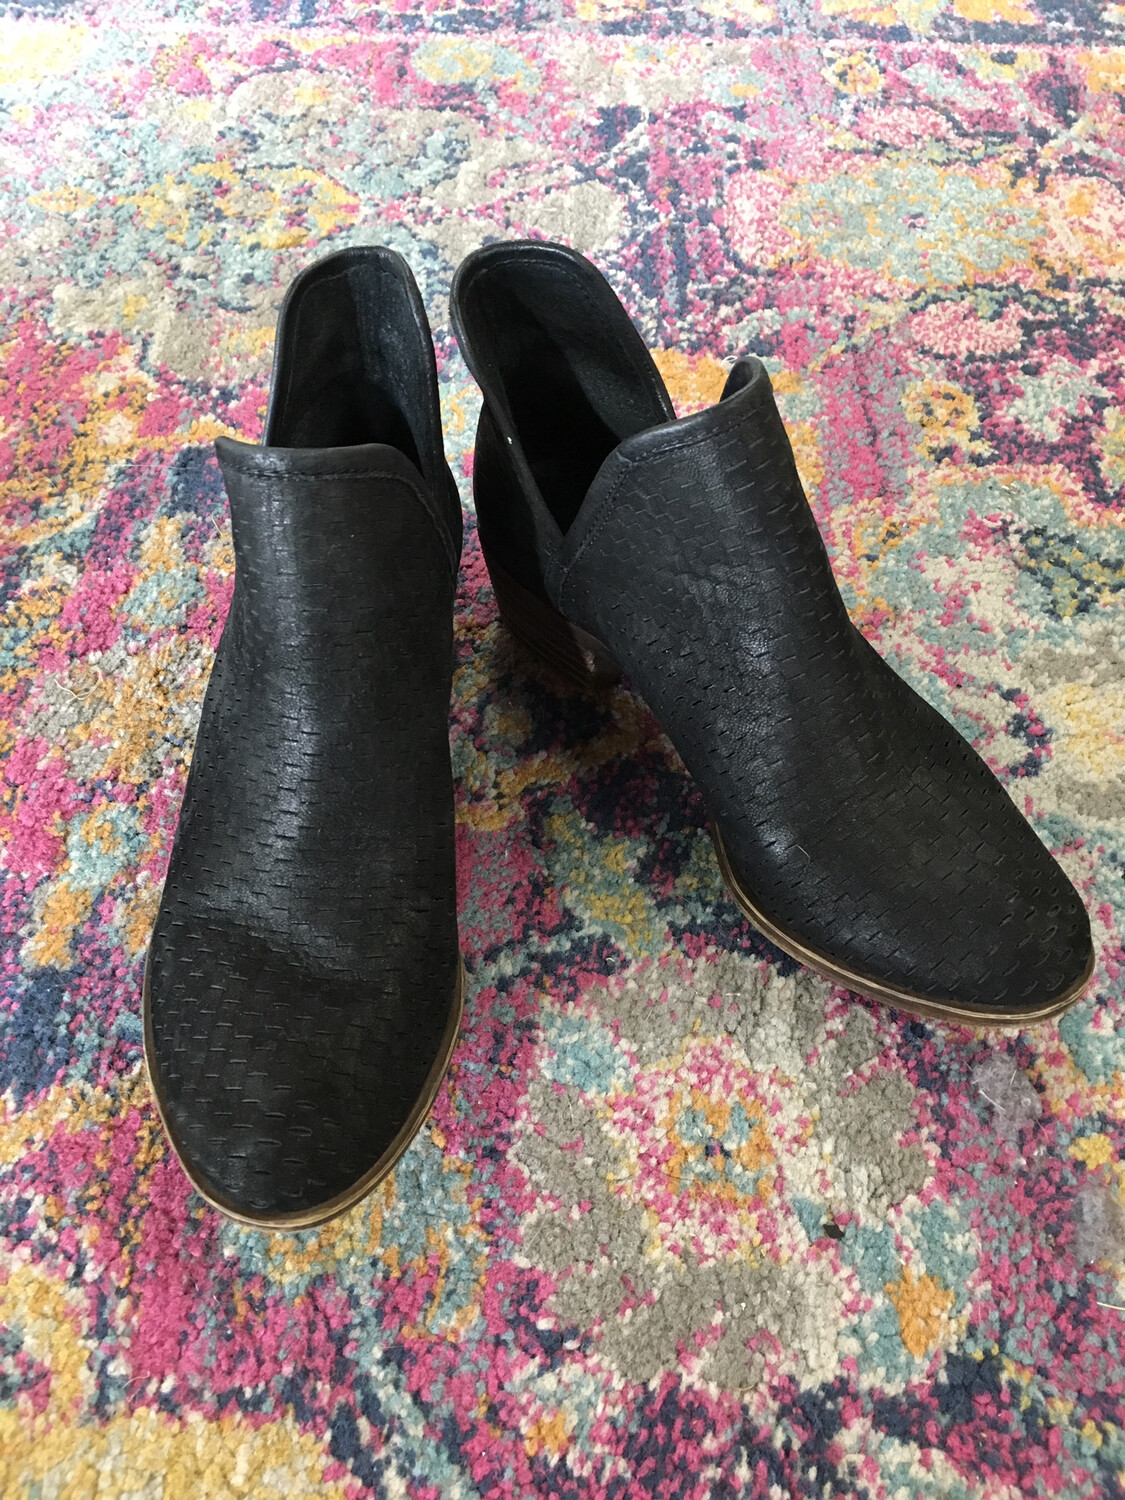 Lucky Brand Black Booties - Size 5.5